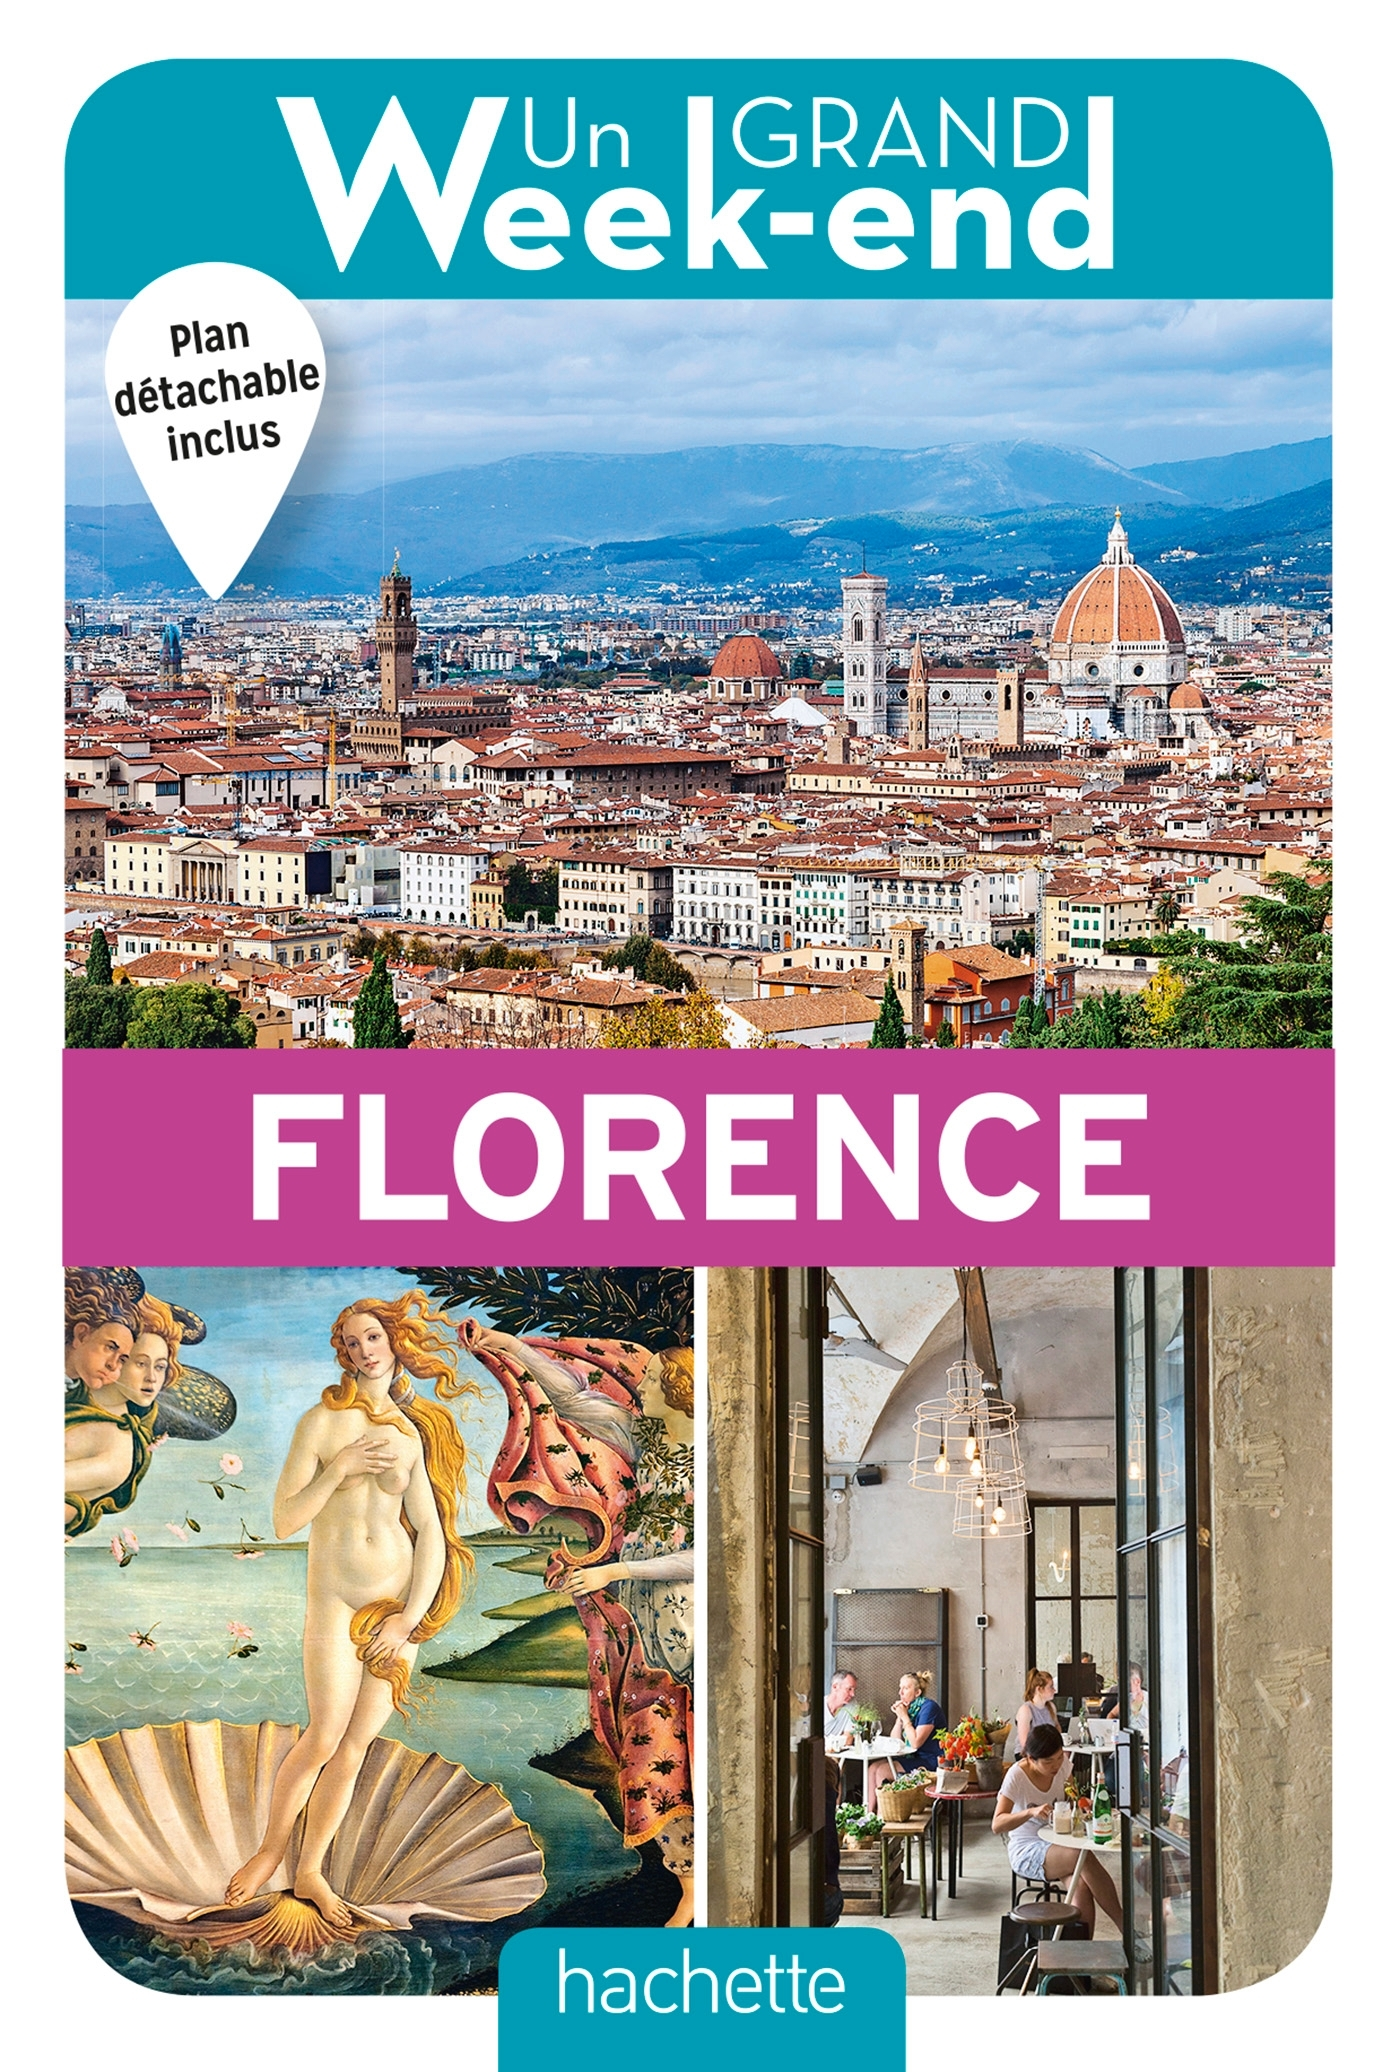 UN GRAND WEEK-END A FLORENCE. LE GUIDE